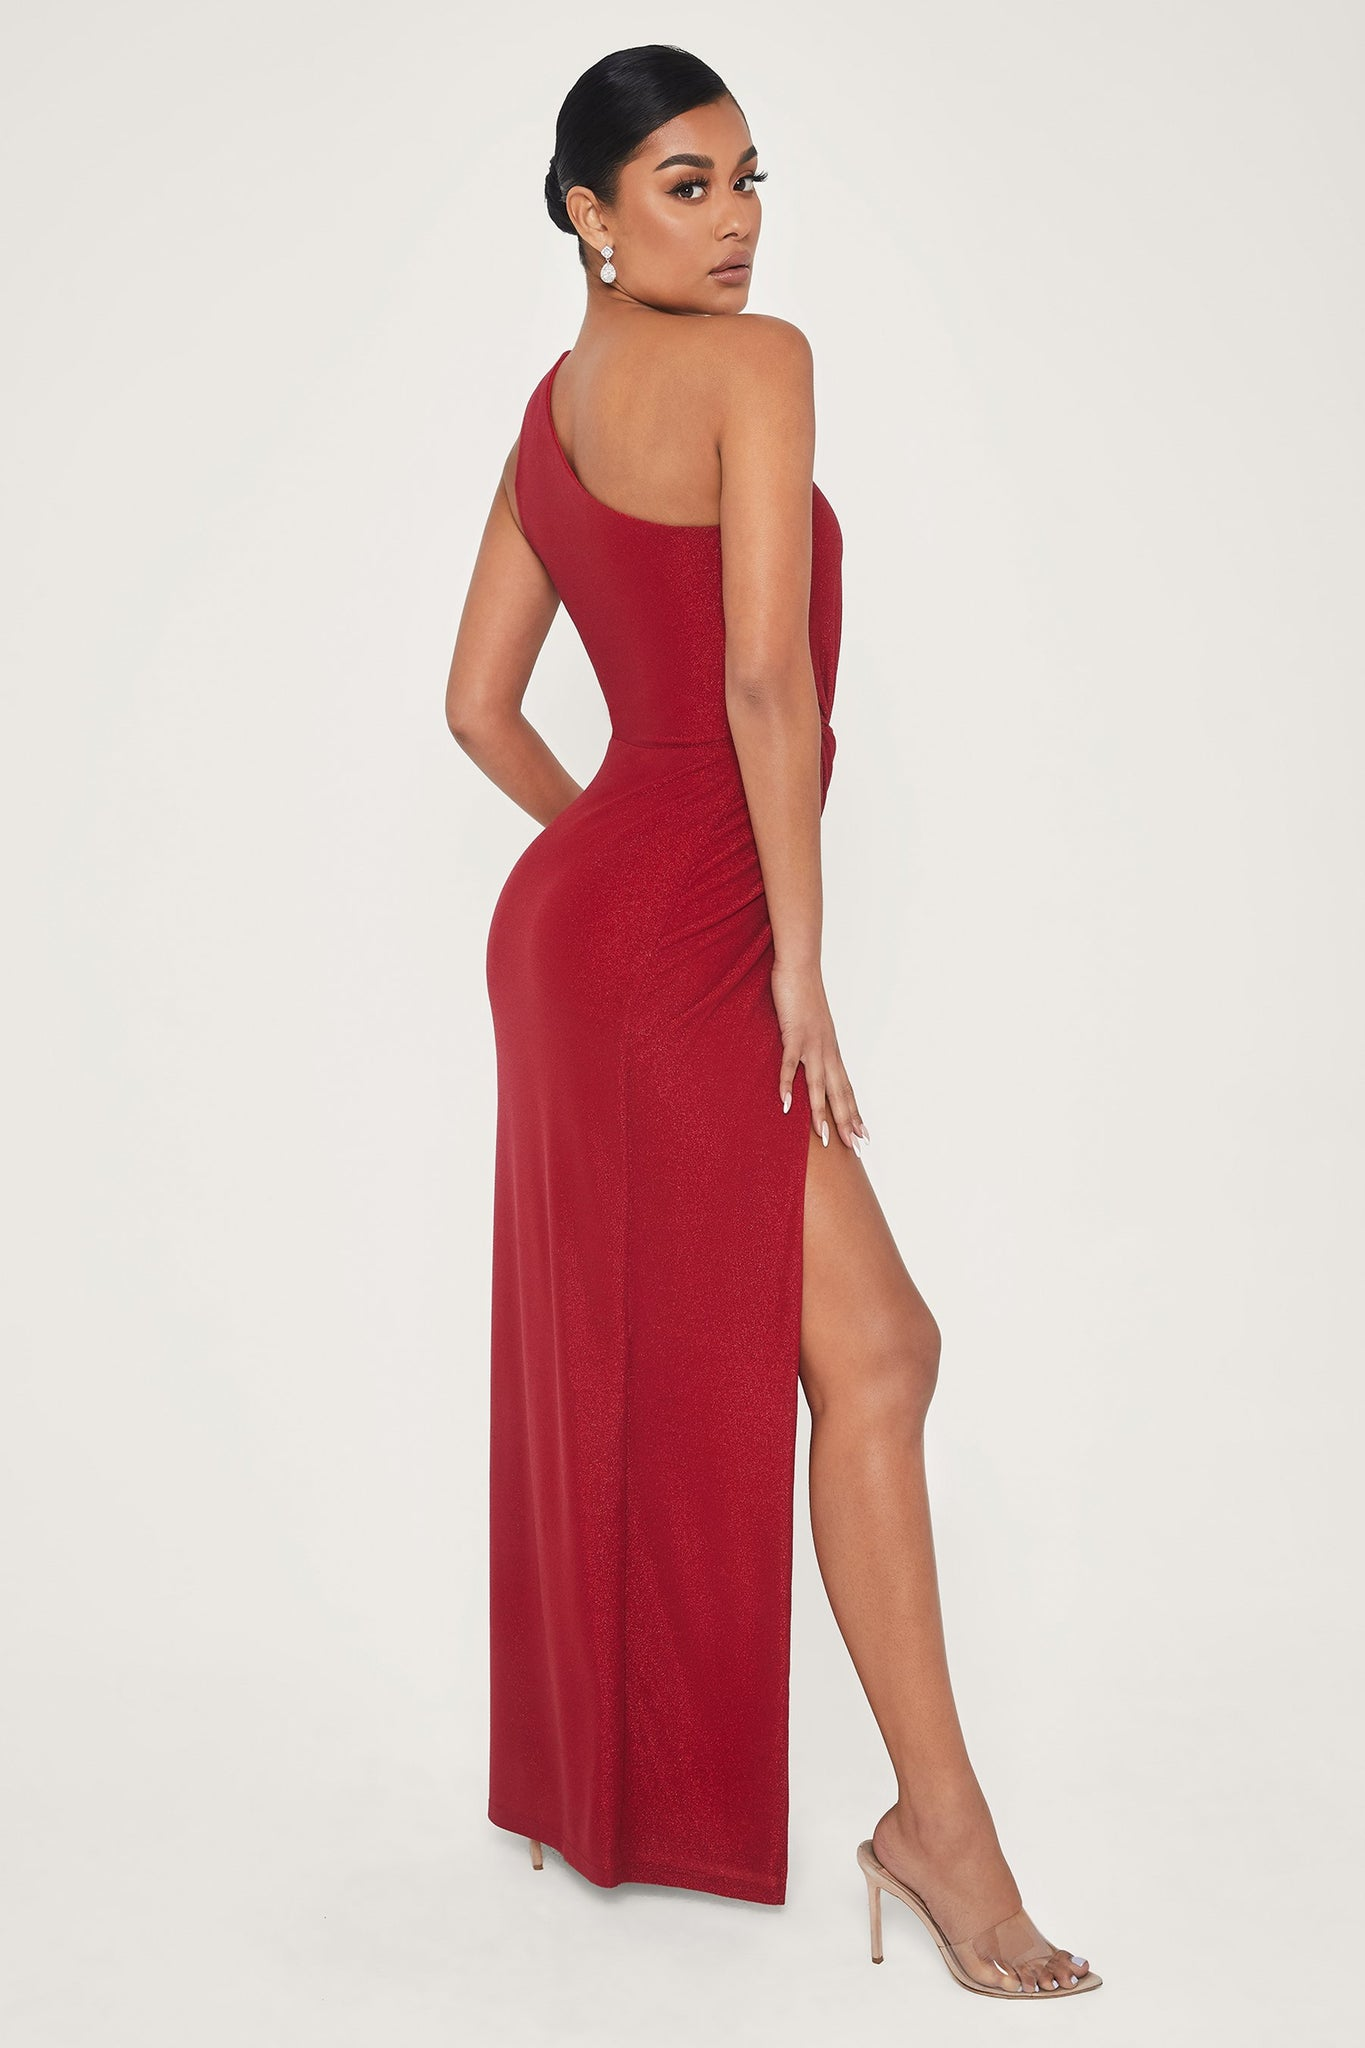 Hattie One Shoulder High Slit Shimmer Maxi Dress - Red - MESHKI